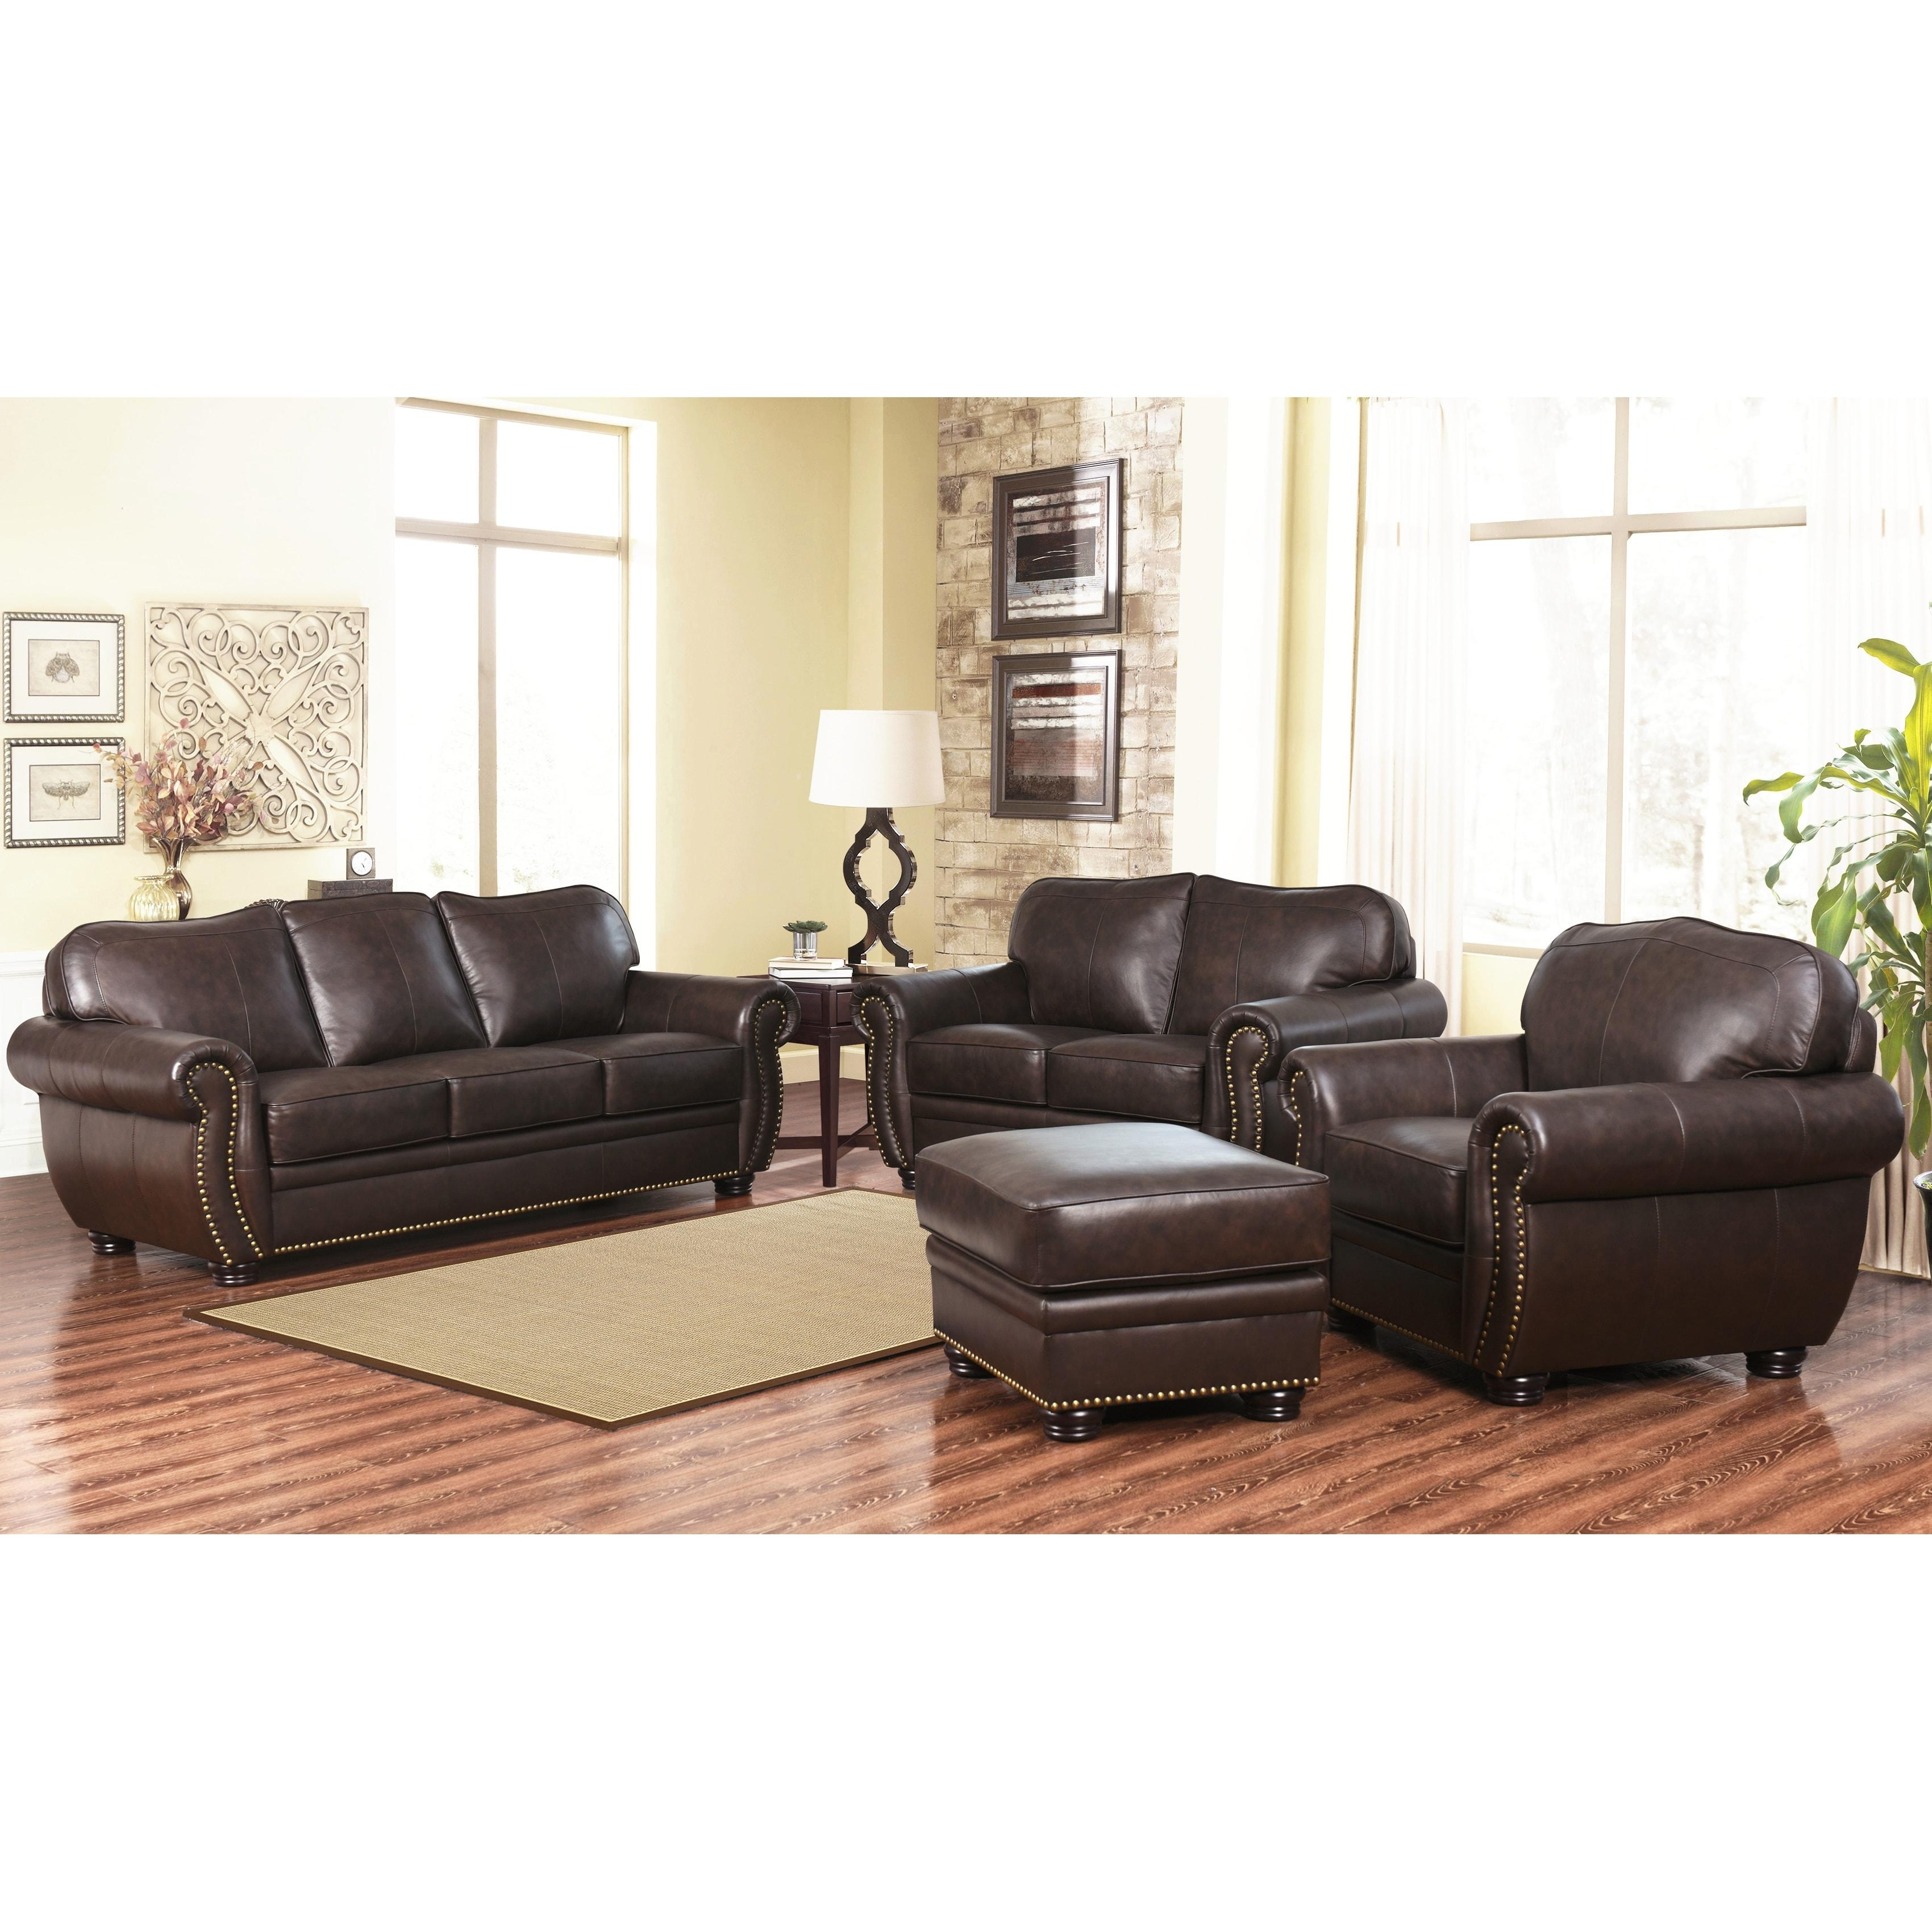 Trendy Craigslist Leather Sofas Regarding Furniture : Craigslist Sofa And Loveseat Luxury Inspirational (View 15 of 15)